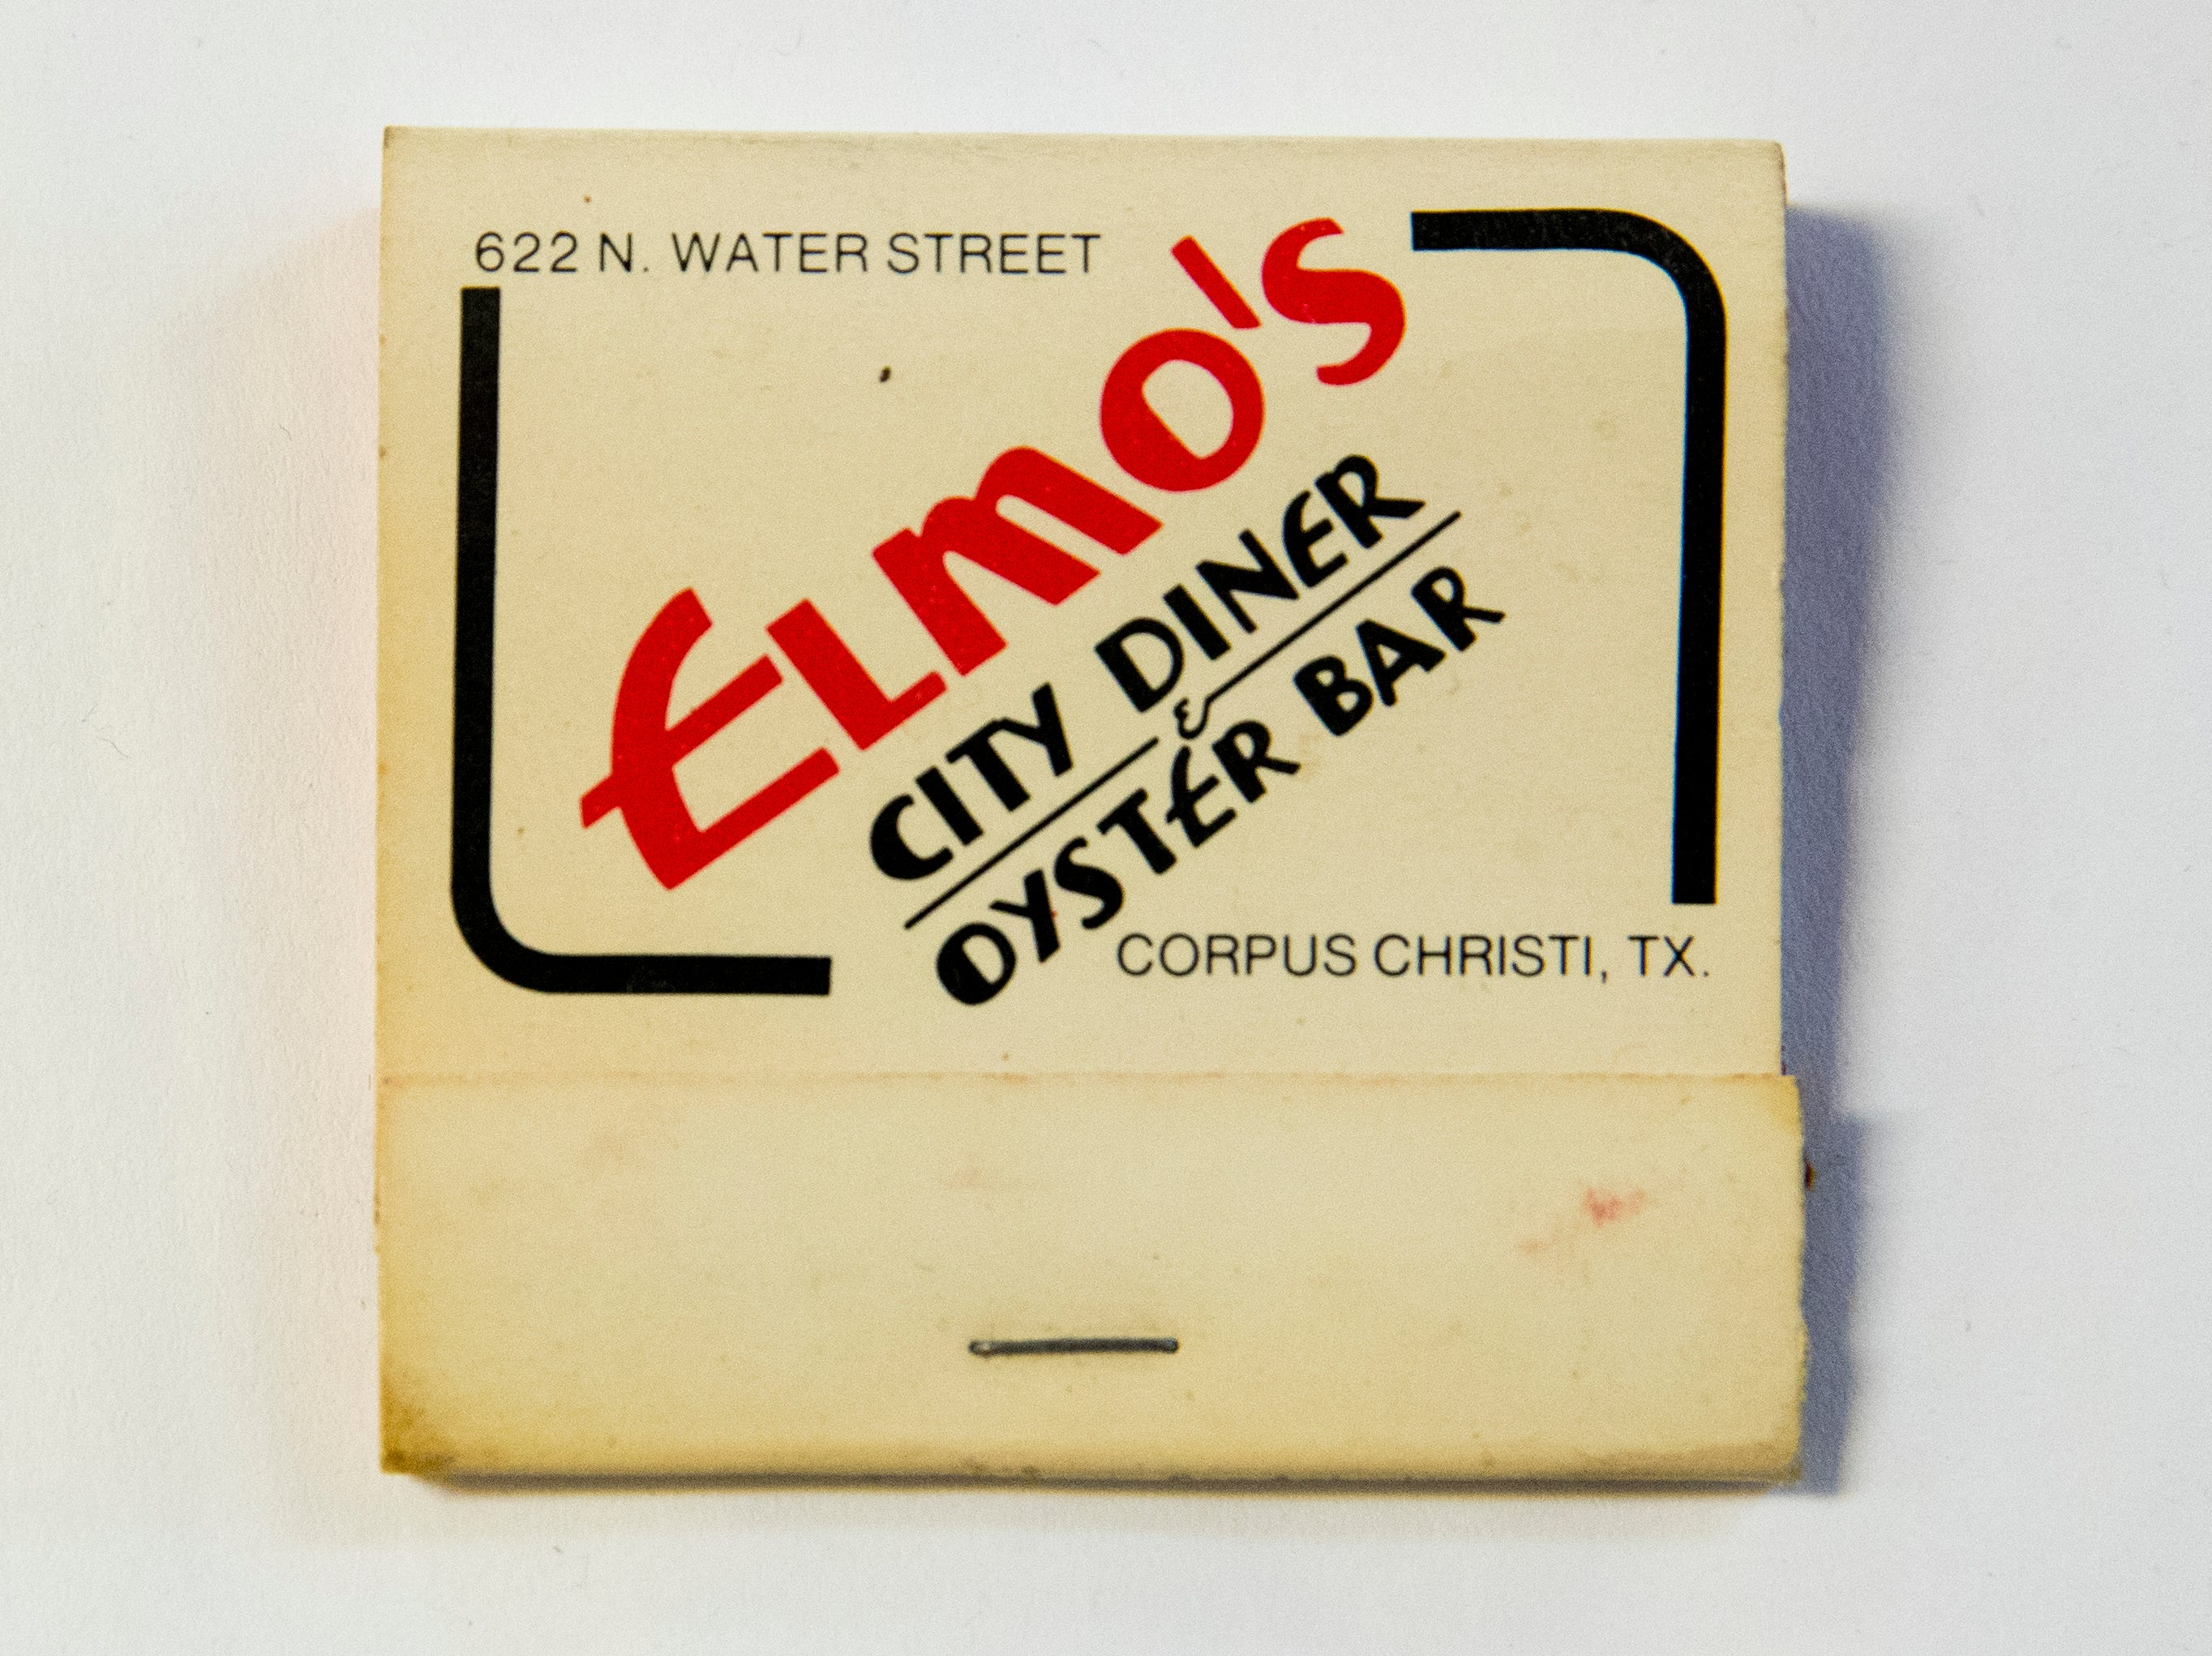 Elmo's City Diner & Oyster Bar was located at 622 N. Water Street in Corpus Christi.